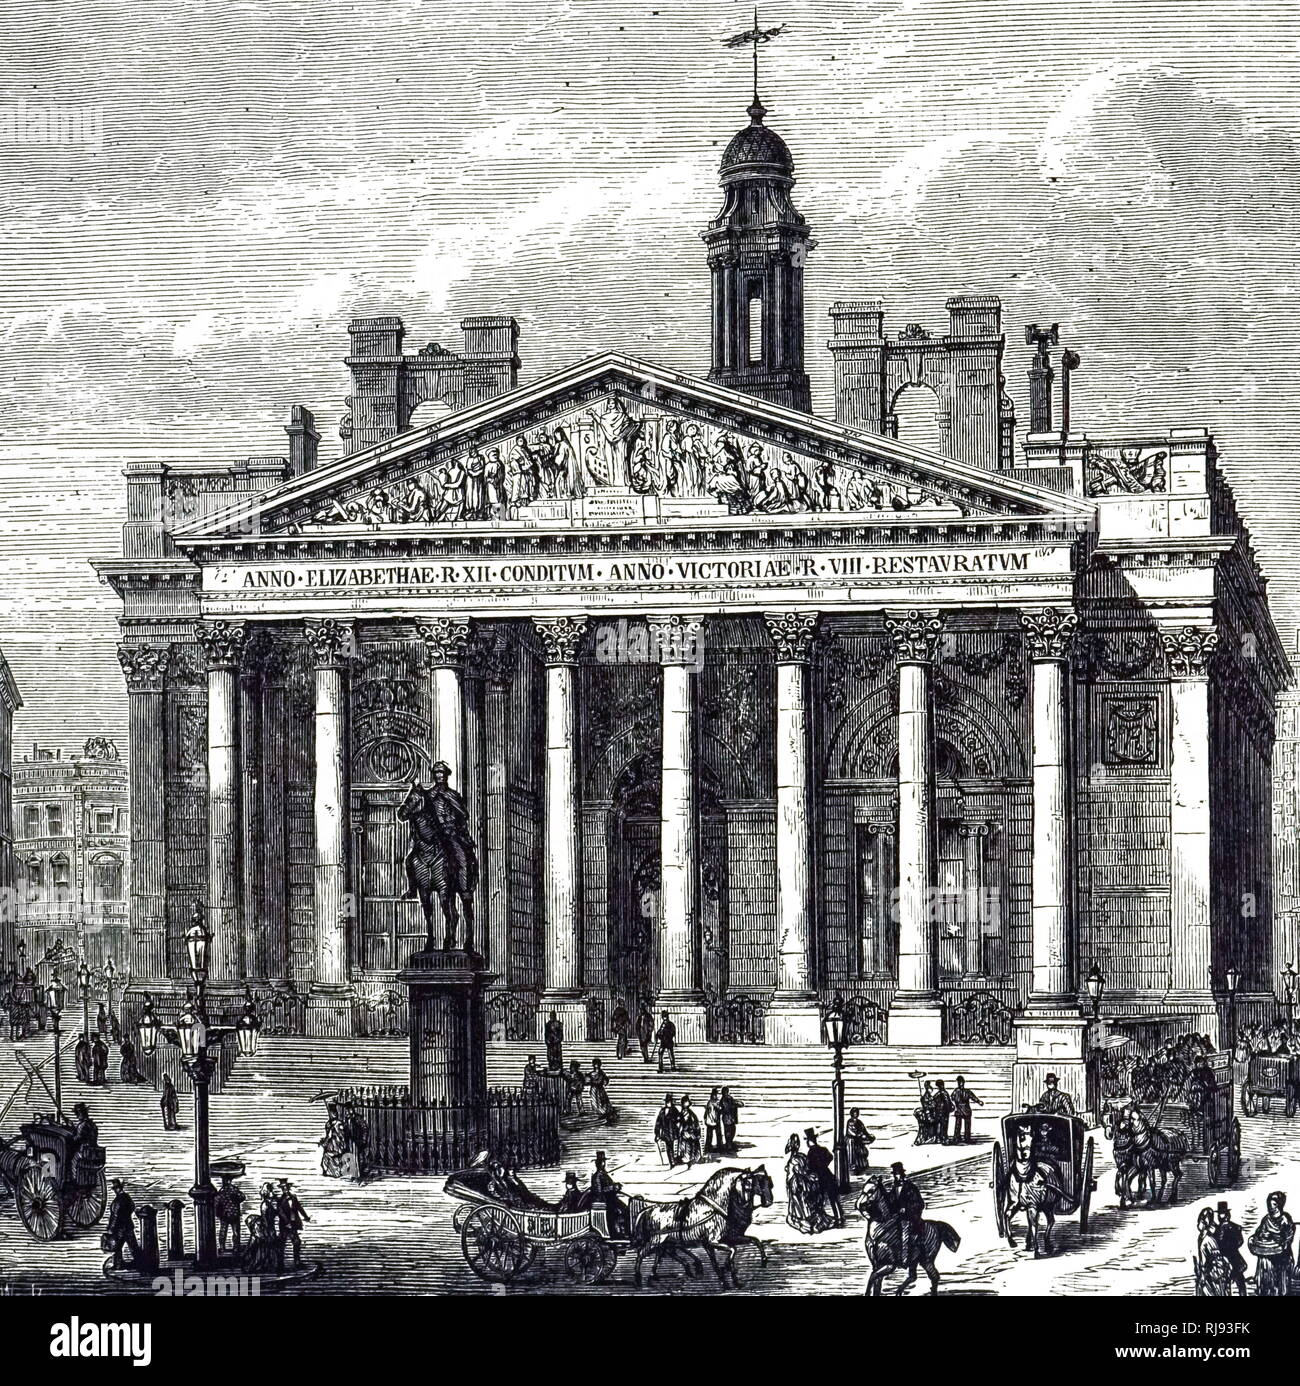 An engraving depicting the Royal Exchange, London. Dated 19th century - Stock Image